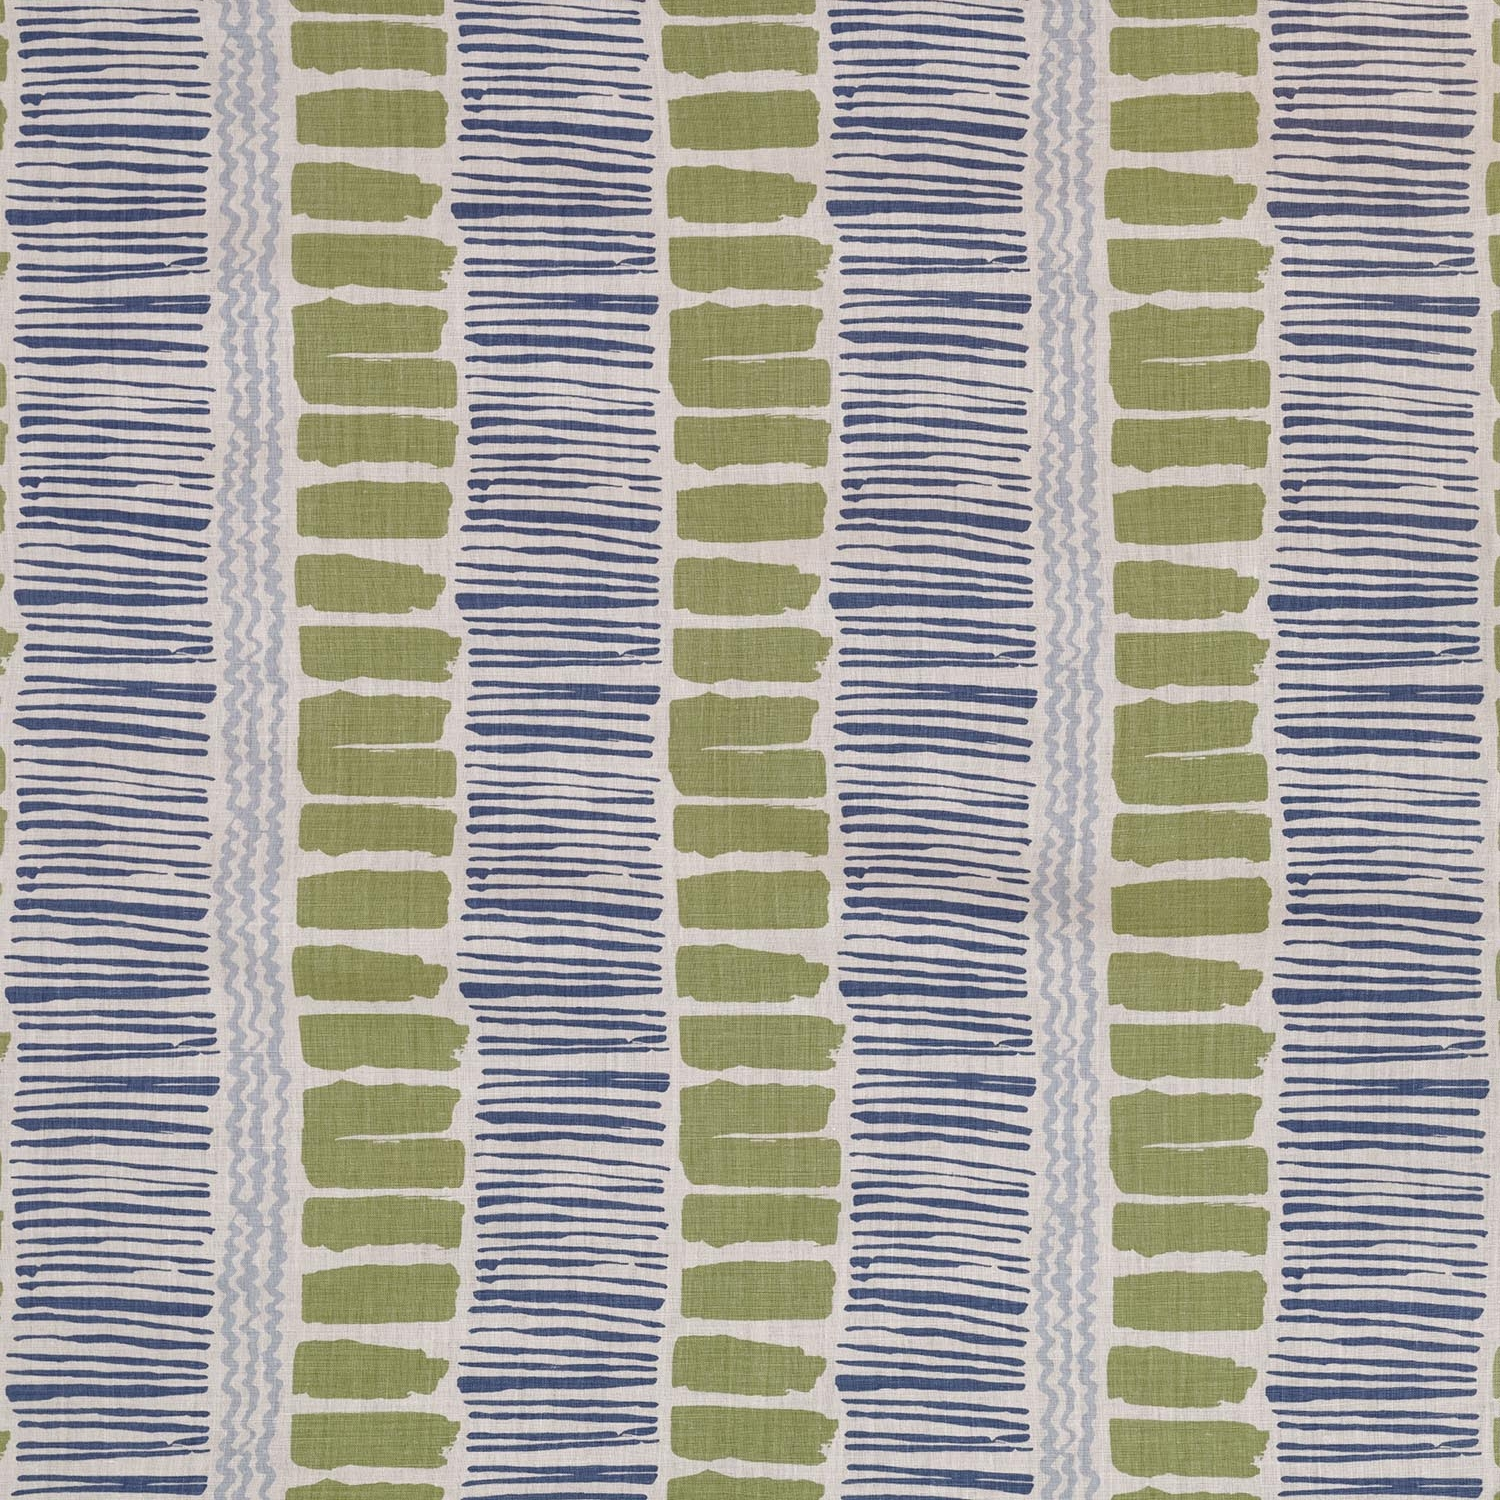 Copy of <p><strong>SALTAIRE</strong>indigo/lime 4450-04<a href=/the-winthorp-collection/saltaire-indigo-lime-4450-04>More →</a></p>